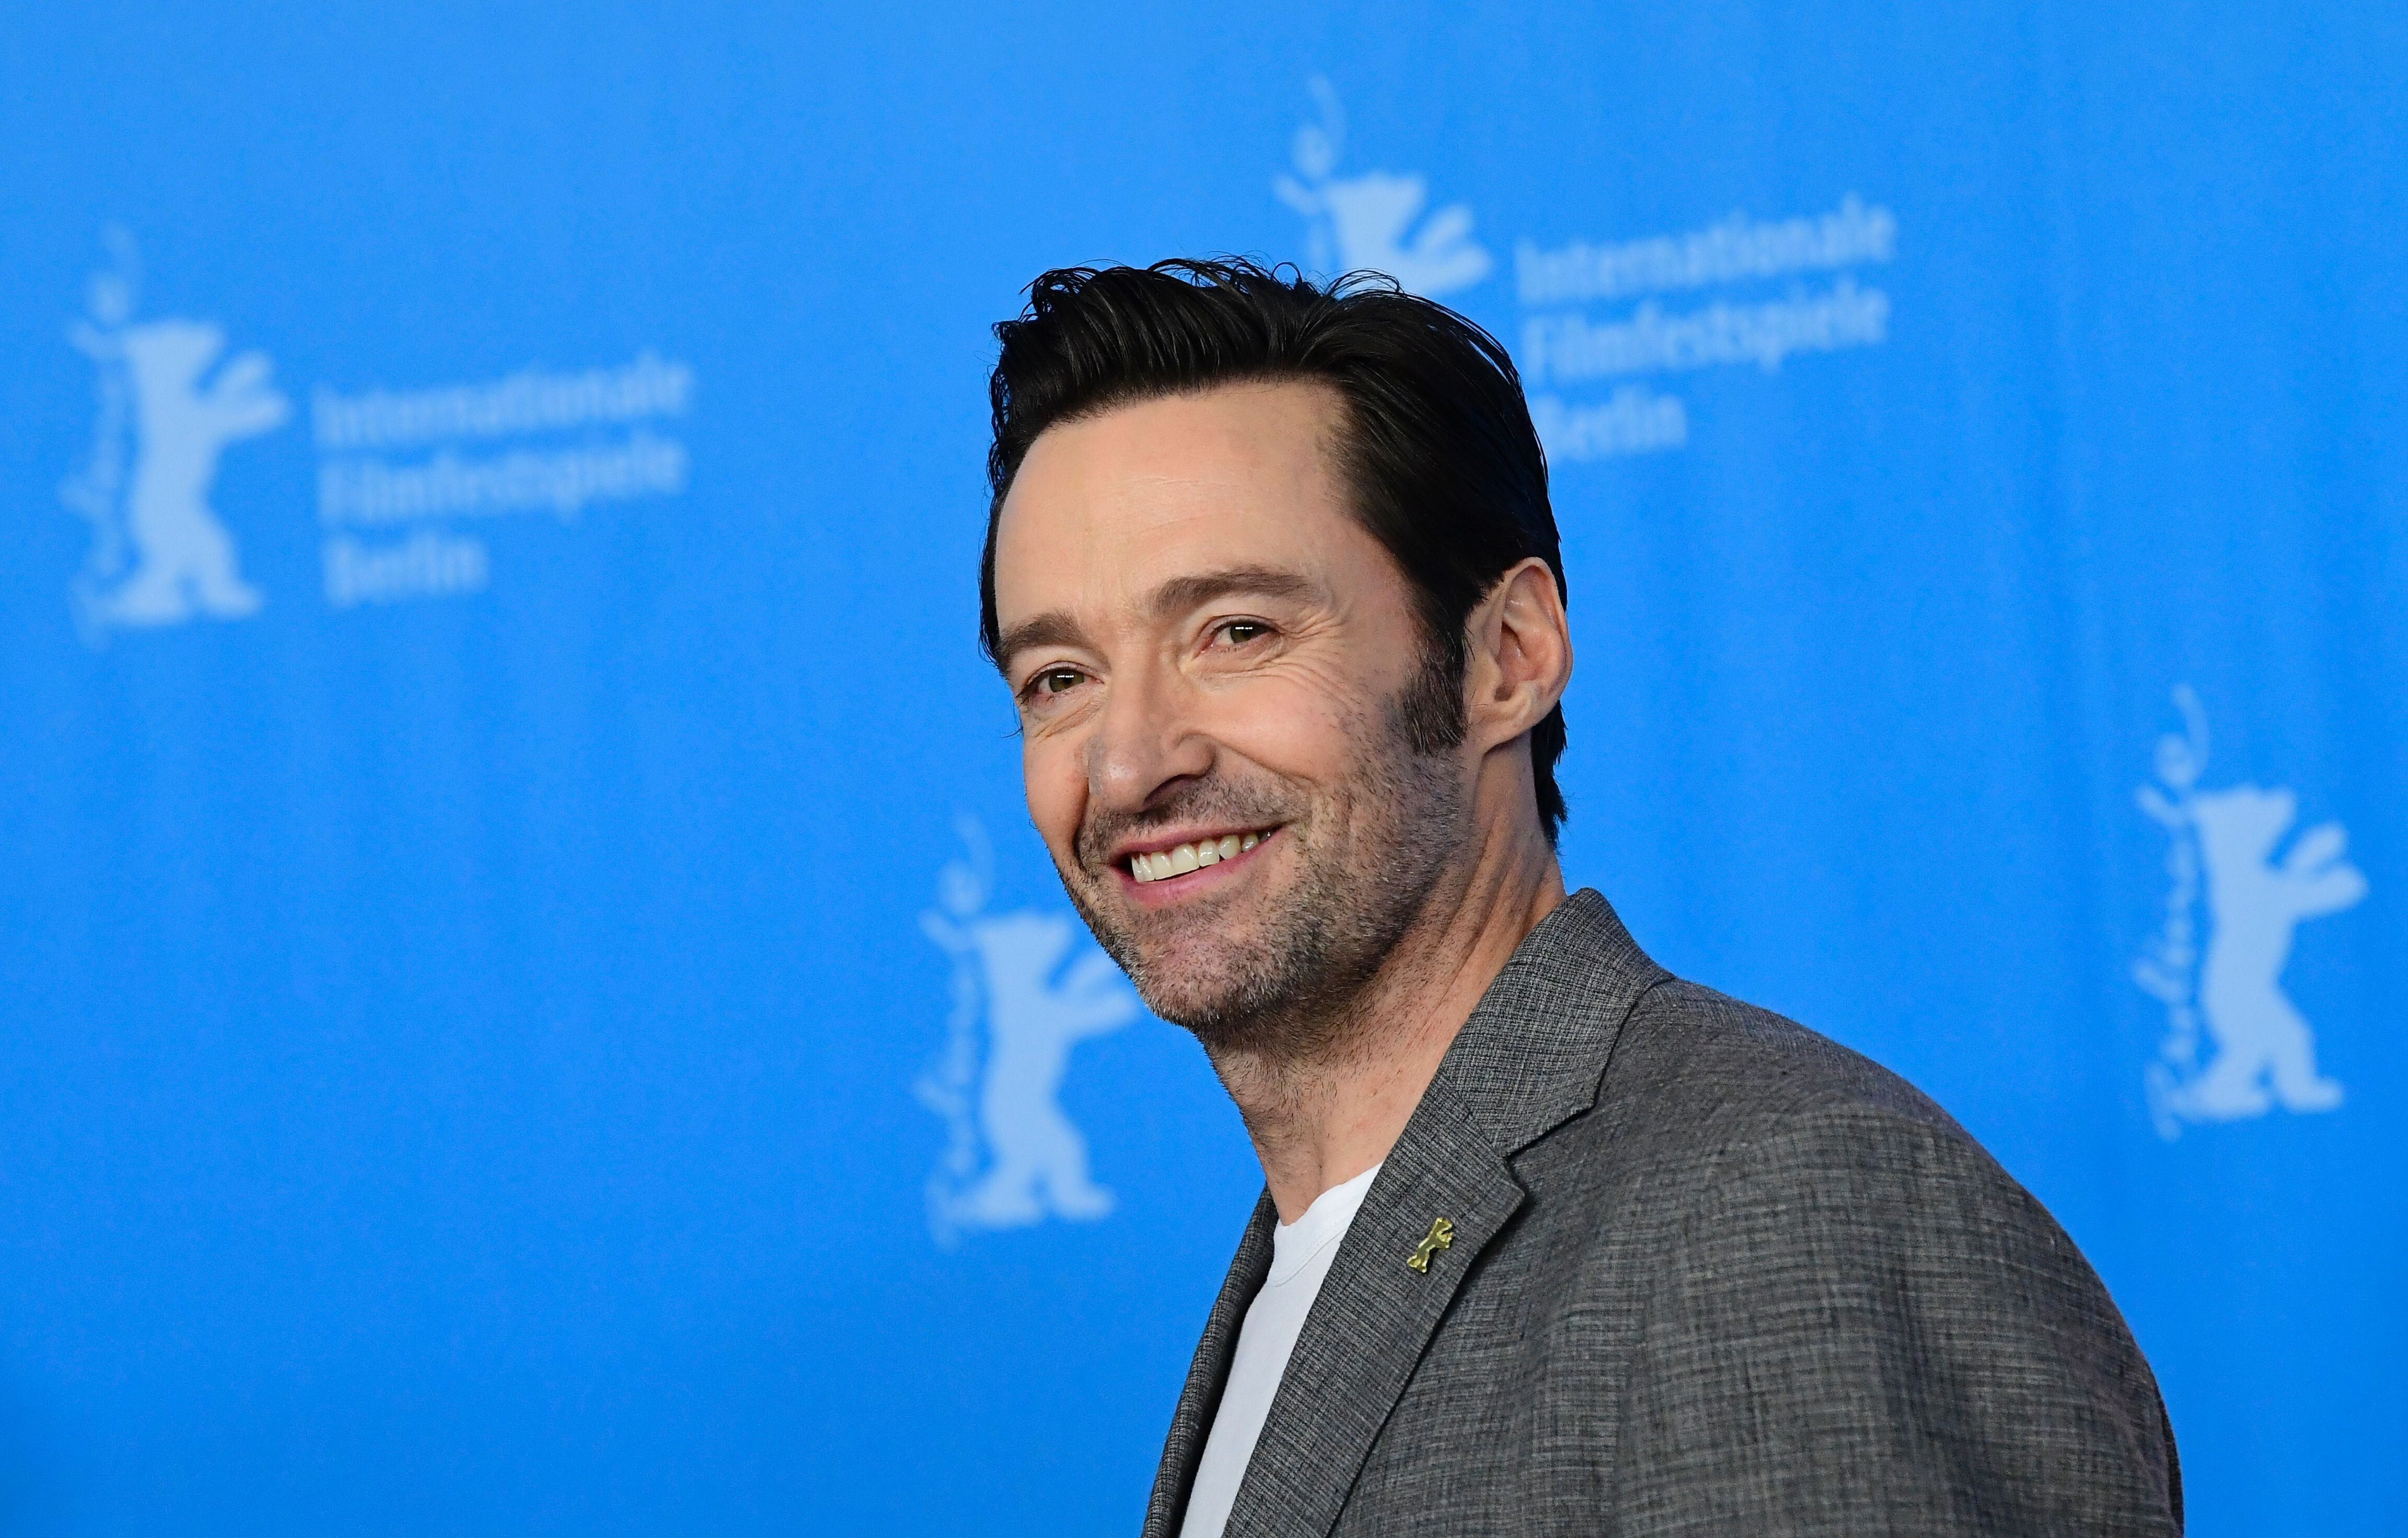 Hugh Jackman says his father died on Australia's Father's Day